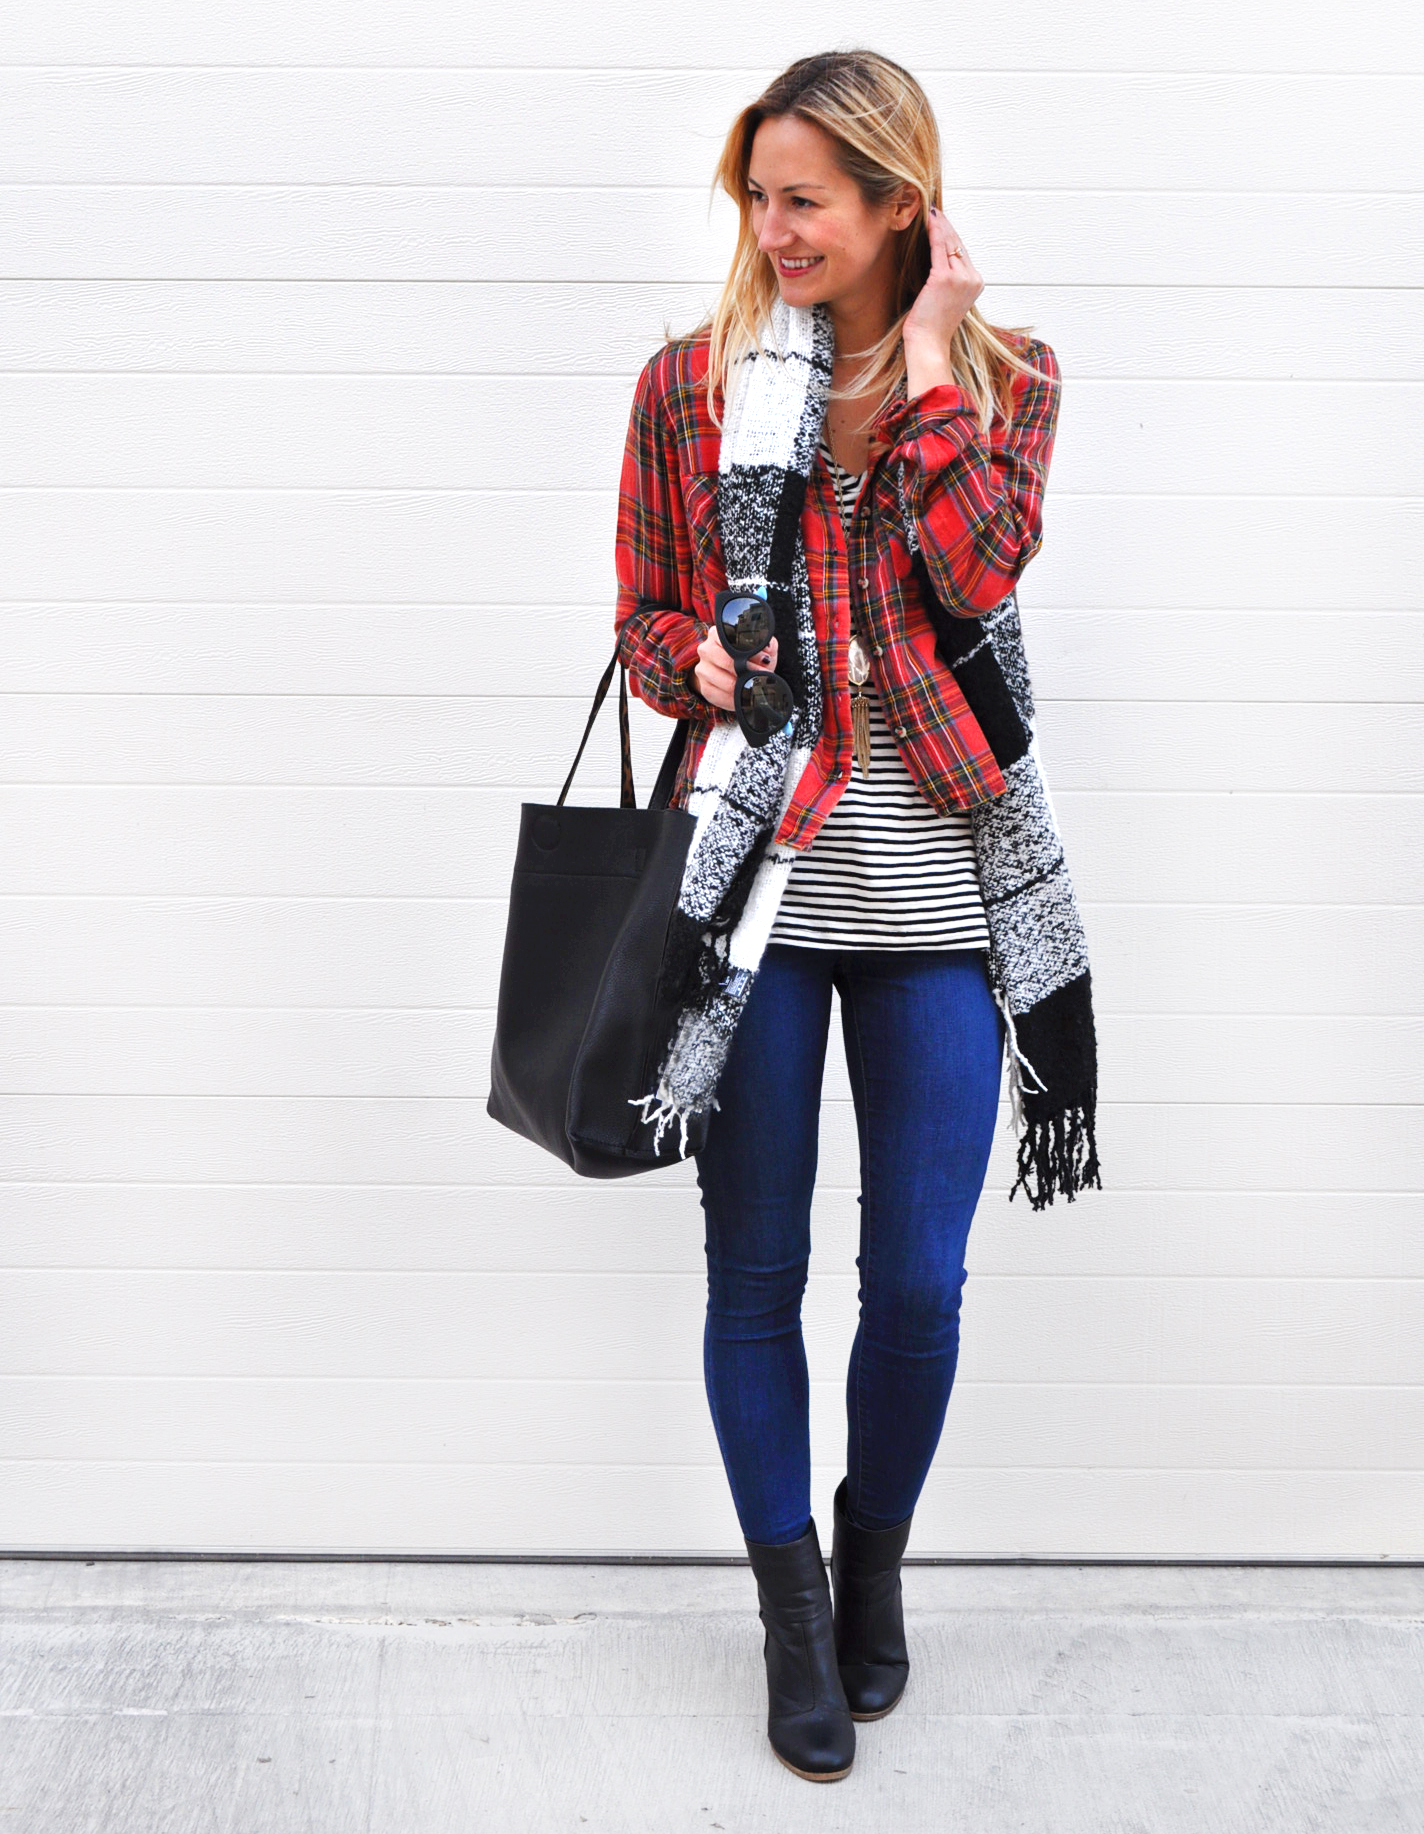 livvyland-blog-olivia-watson-topshop-plaid-top-striped-shirt-leigh-skinny-jeans-winter-layers-kendra-scott-rayne-necklace-white-pearl-austin-texas-fashion-blogger-4